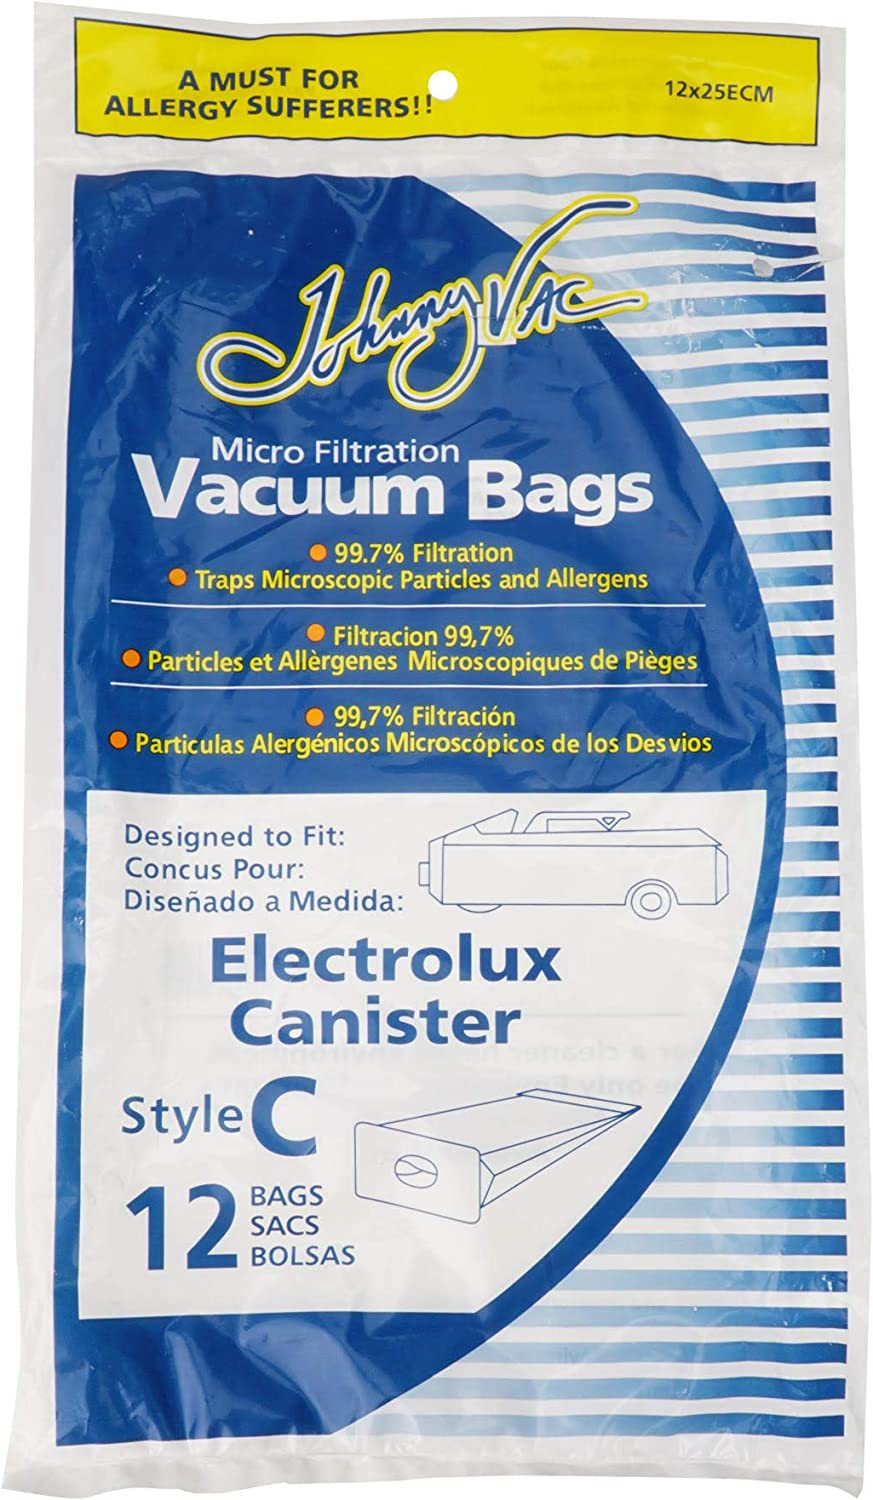 12 Electrolux Allergy canister Tank Style C vacuum bags